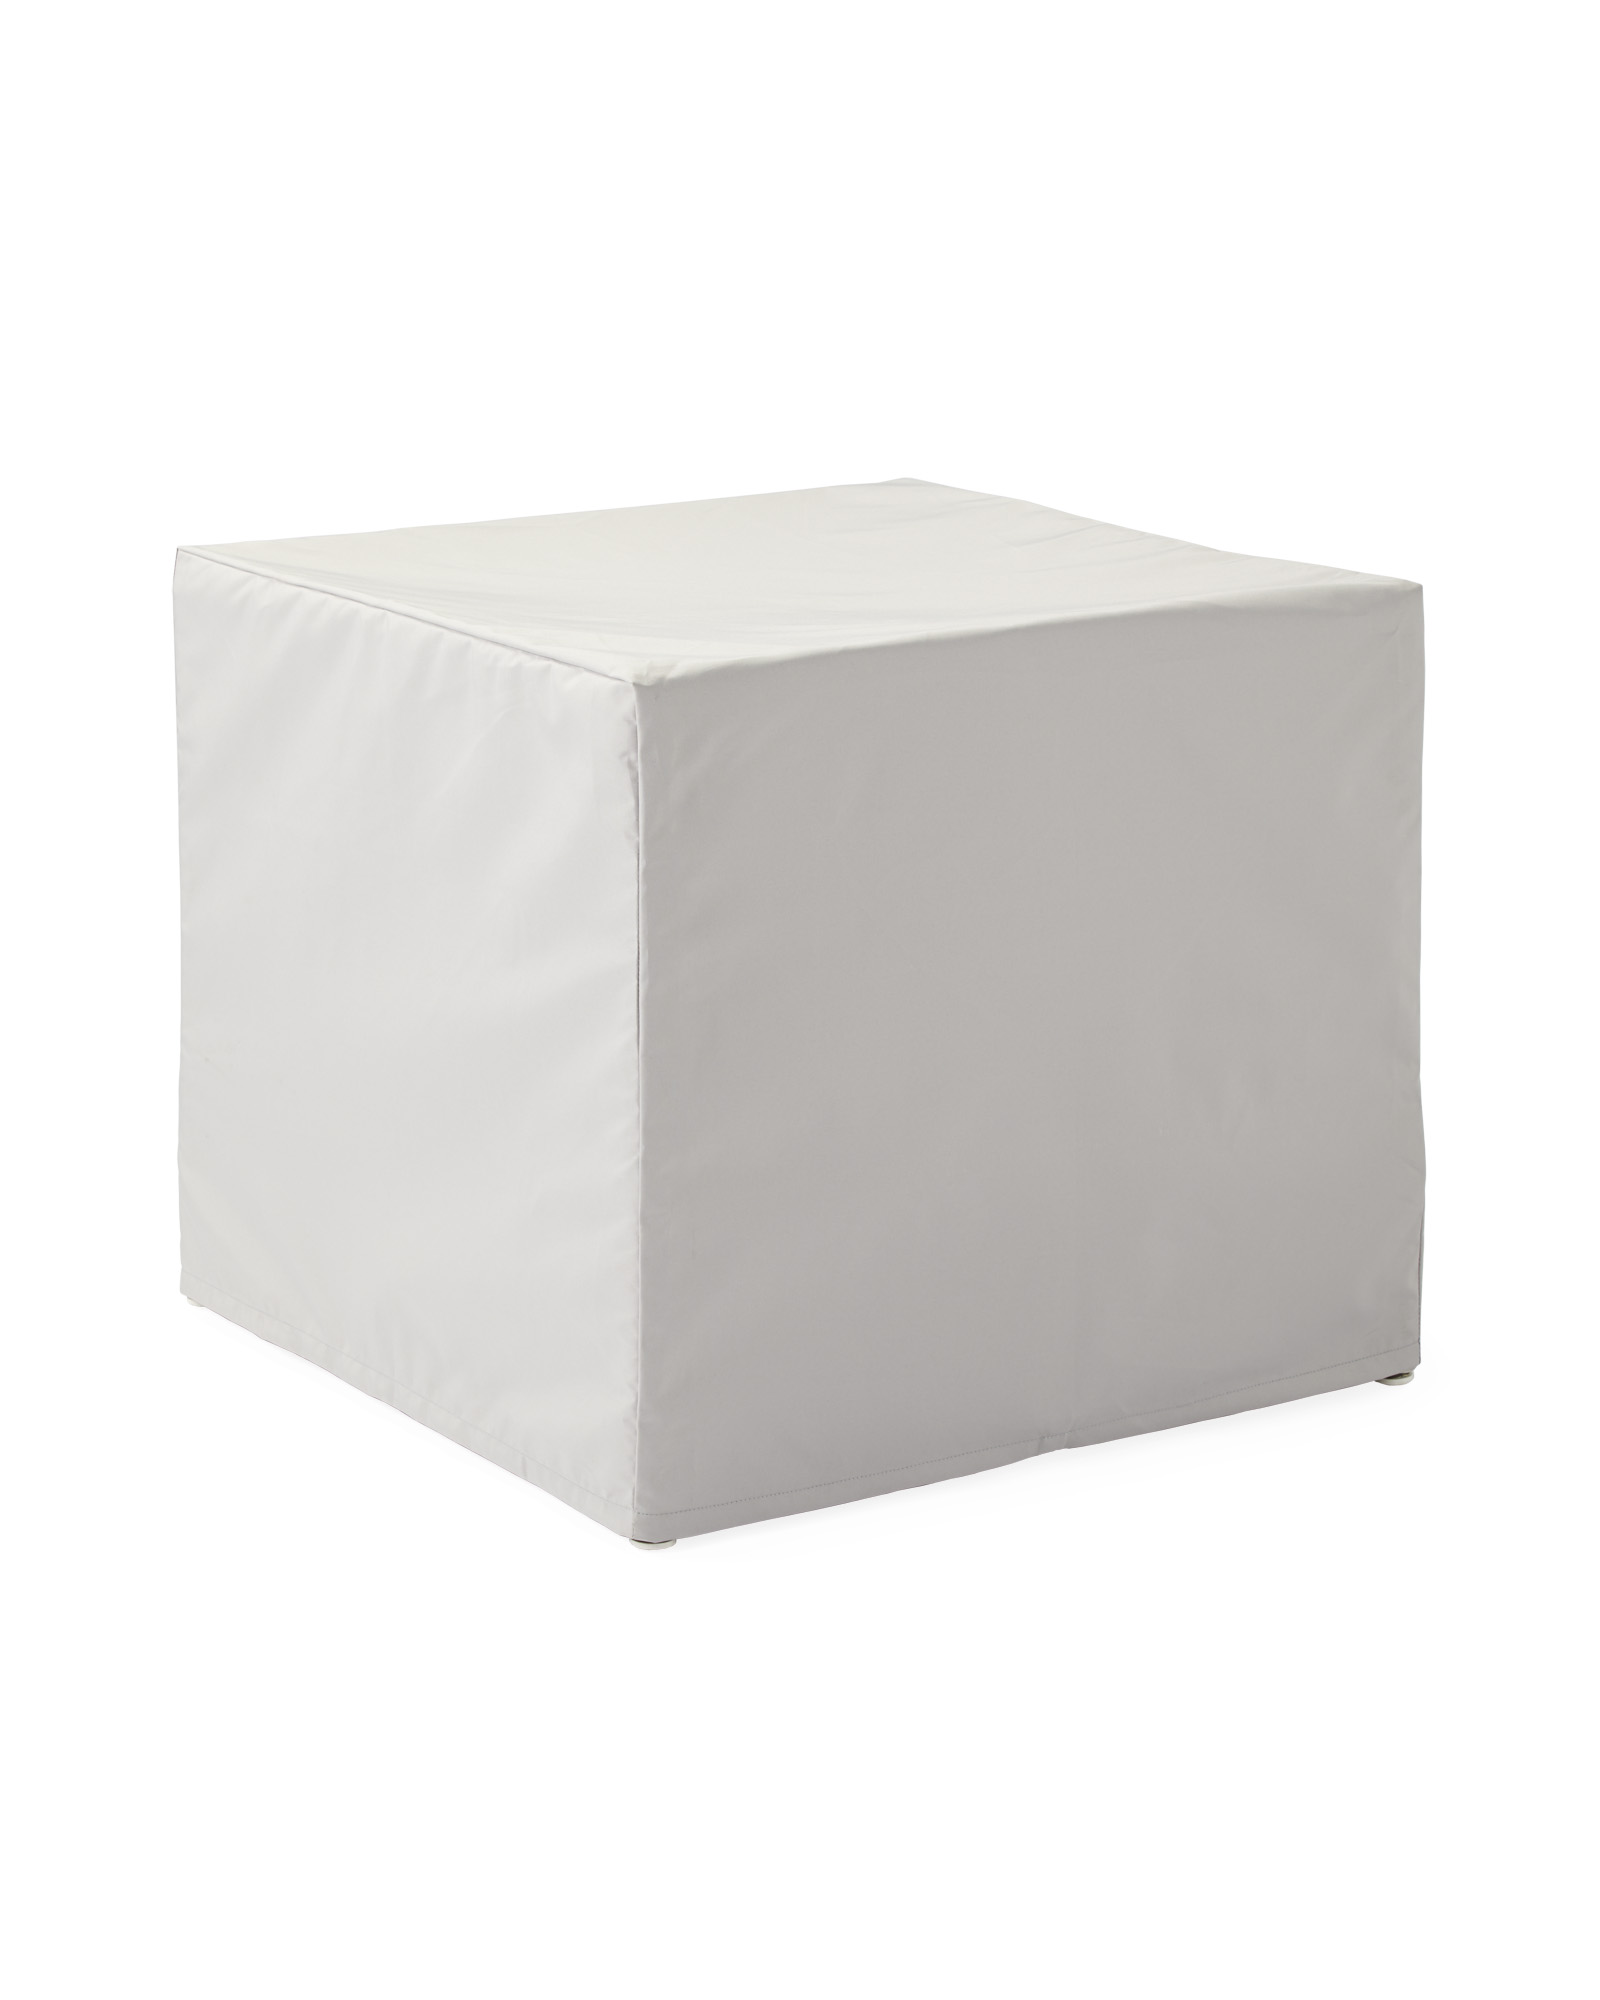 Pacifica Lounge Chair Outdoor Cover,